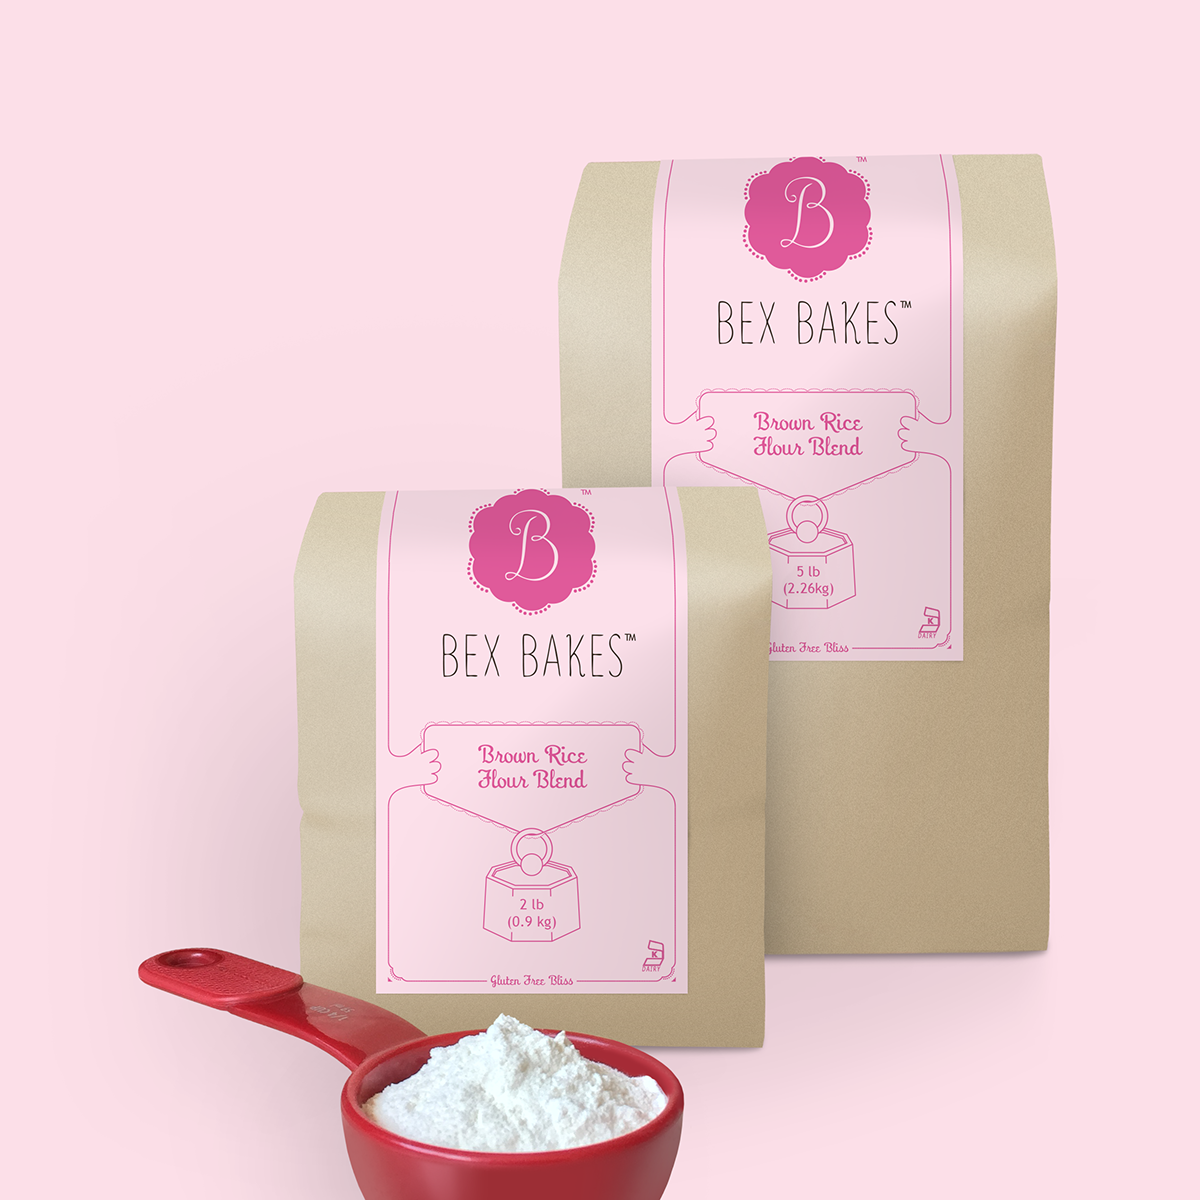 Bex Bakes Brown Rice Flour Blend Packaging on Behance